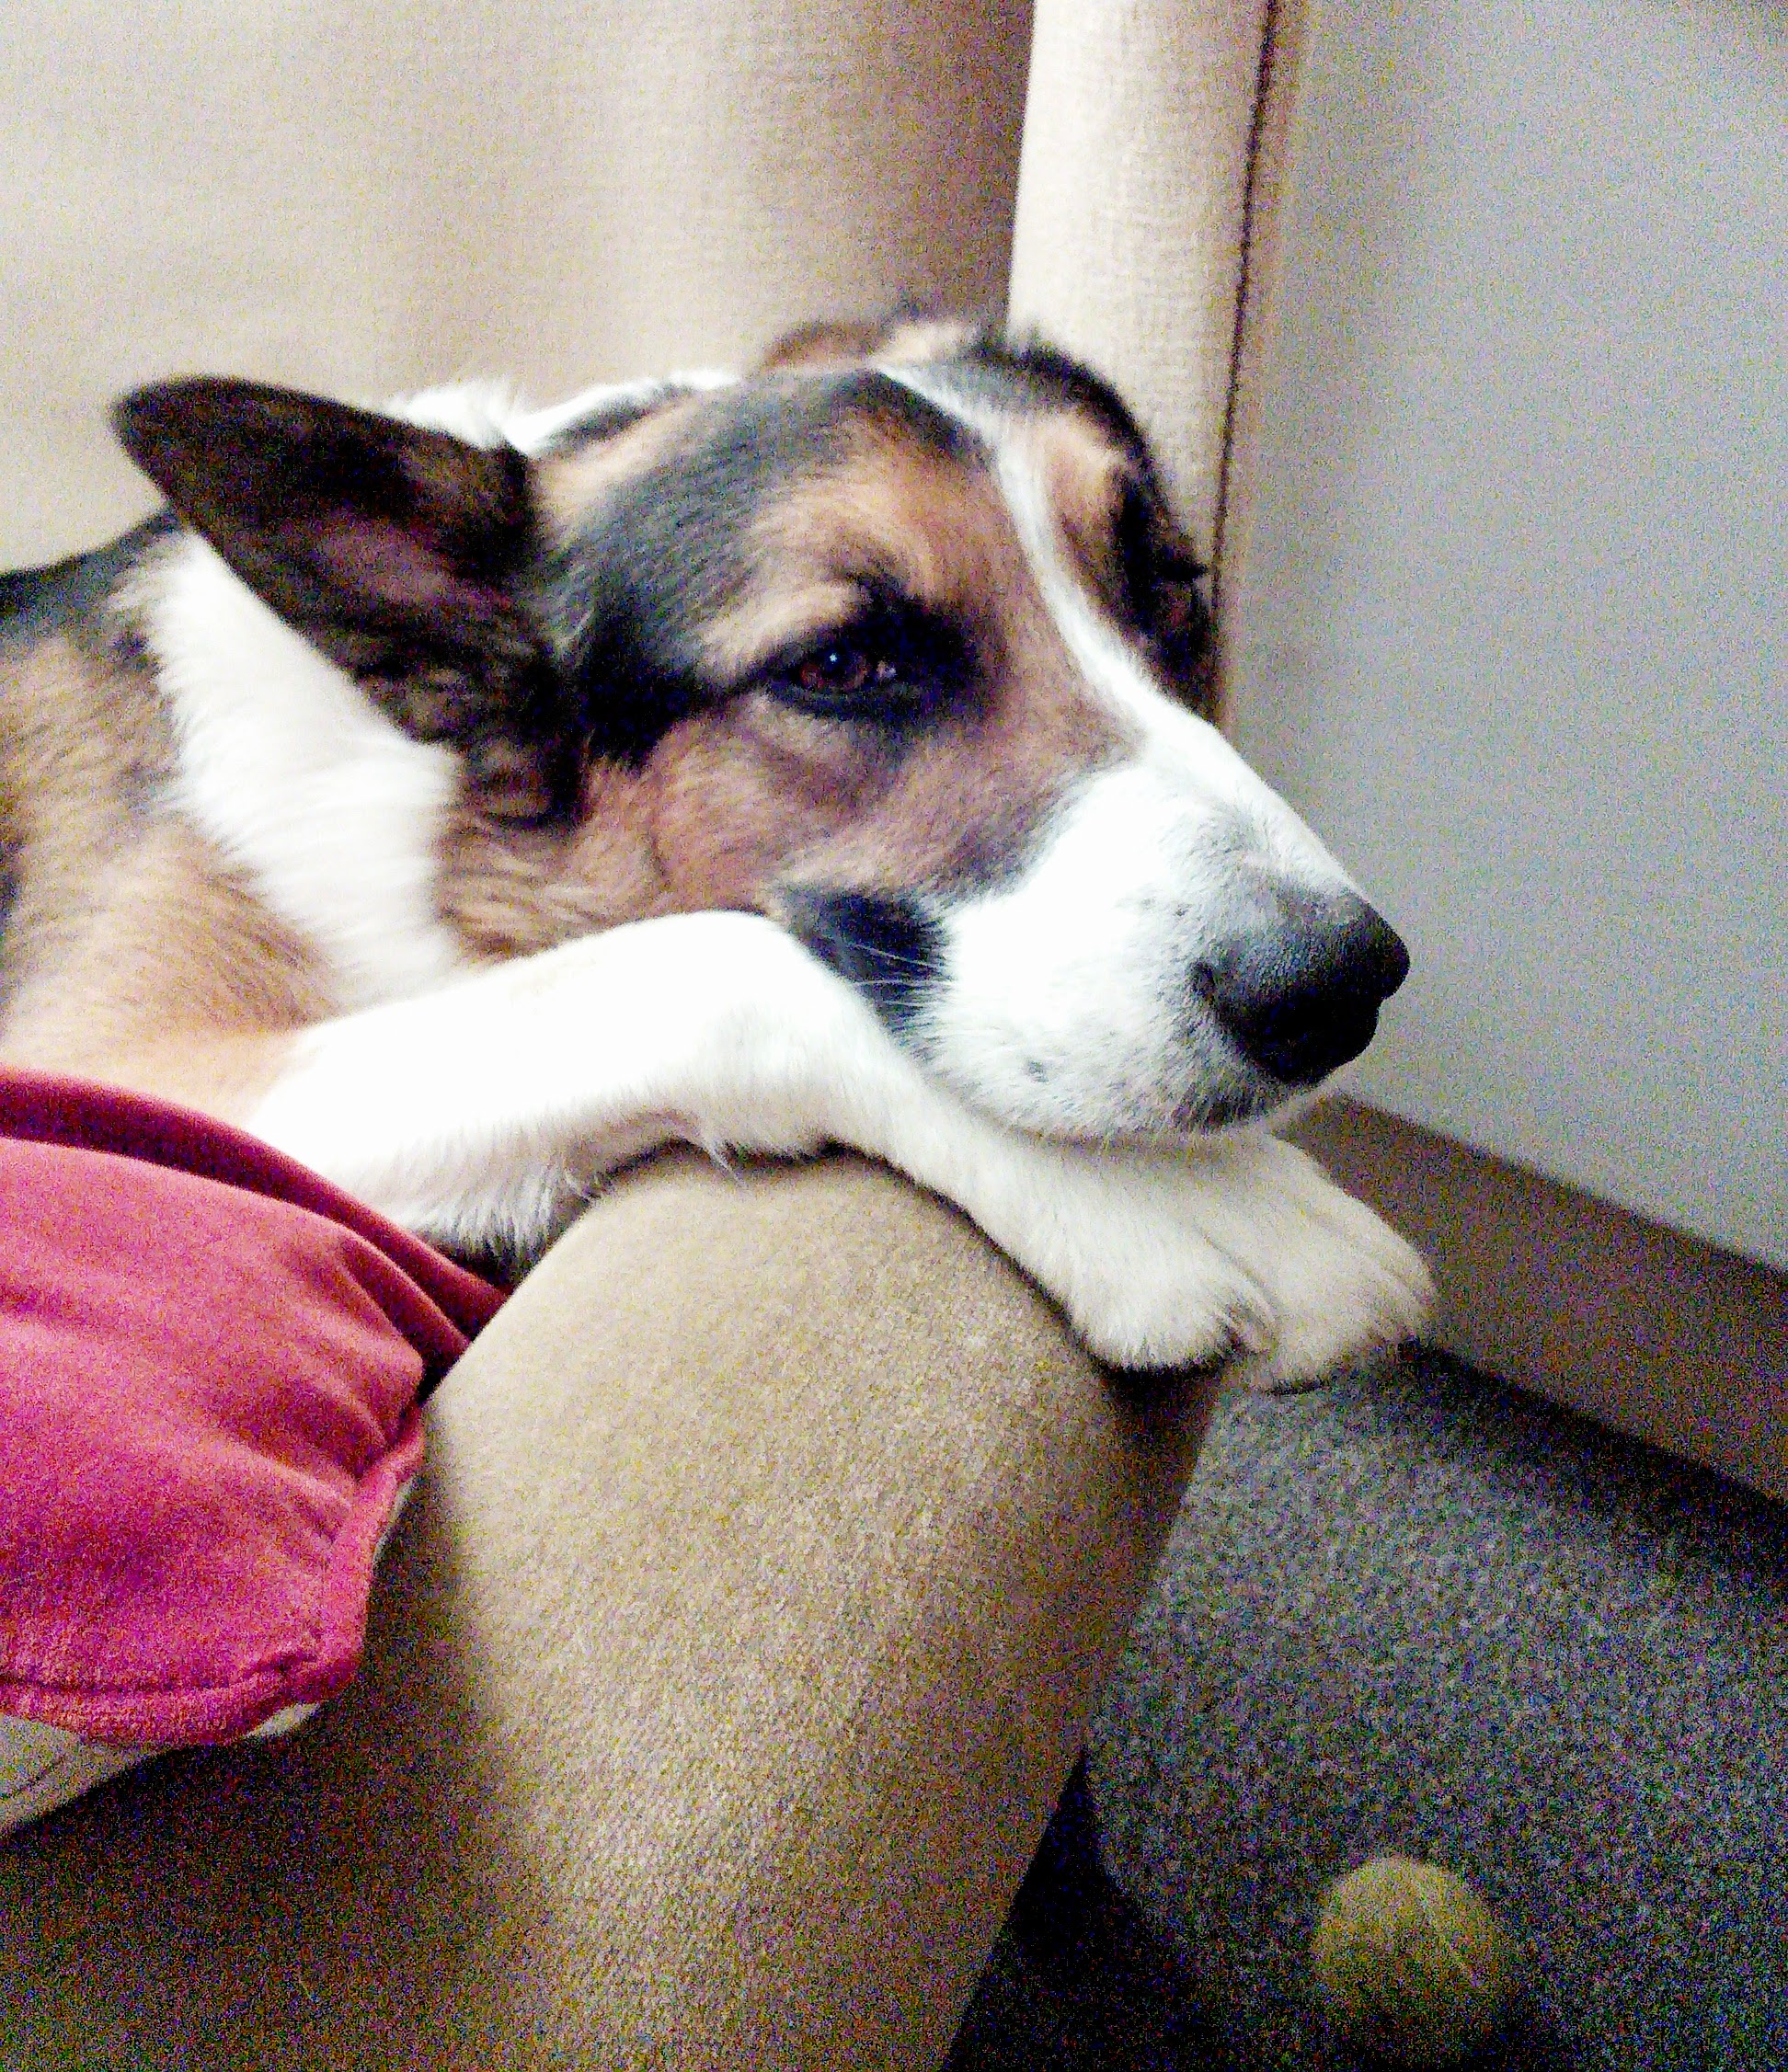 Bosco, looking sad with the thought of Fr Sony leaving!